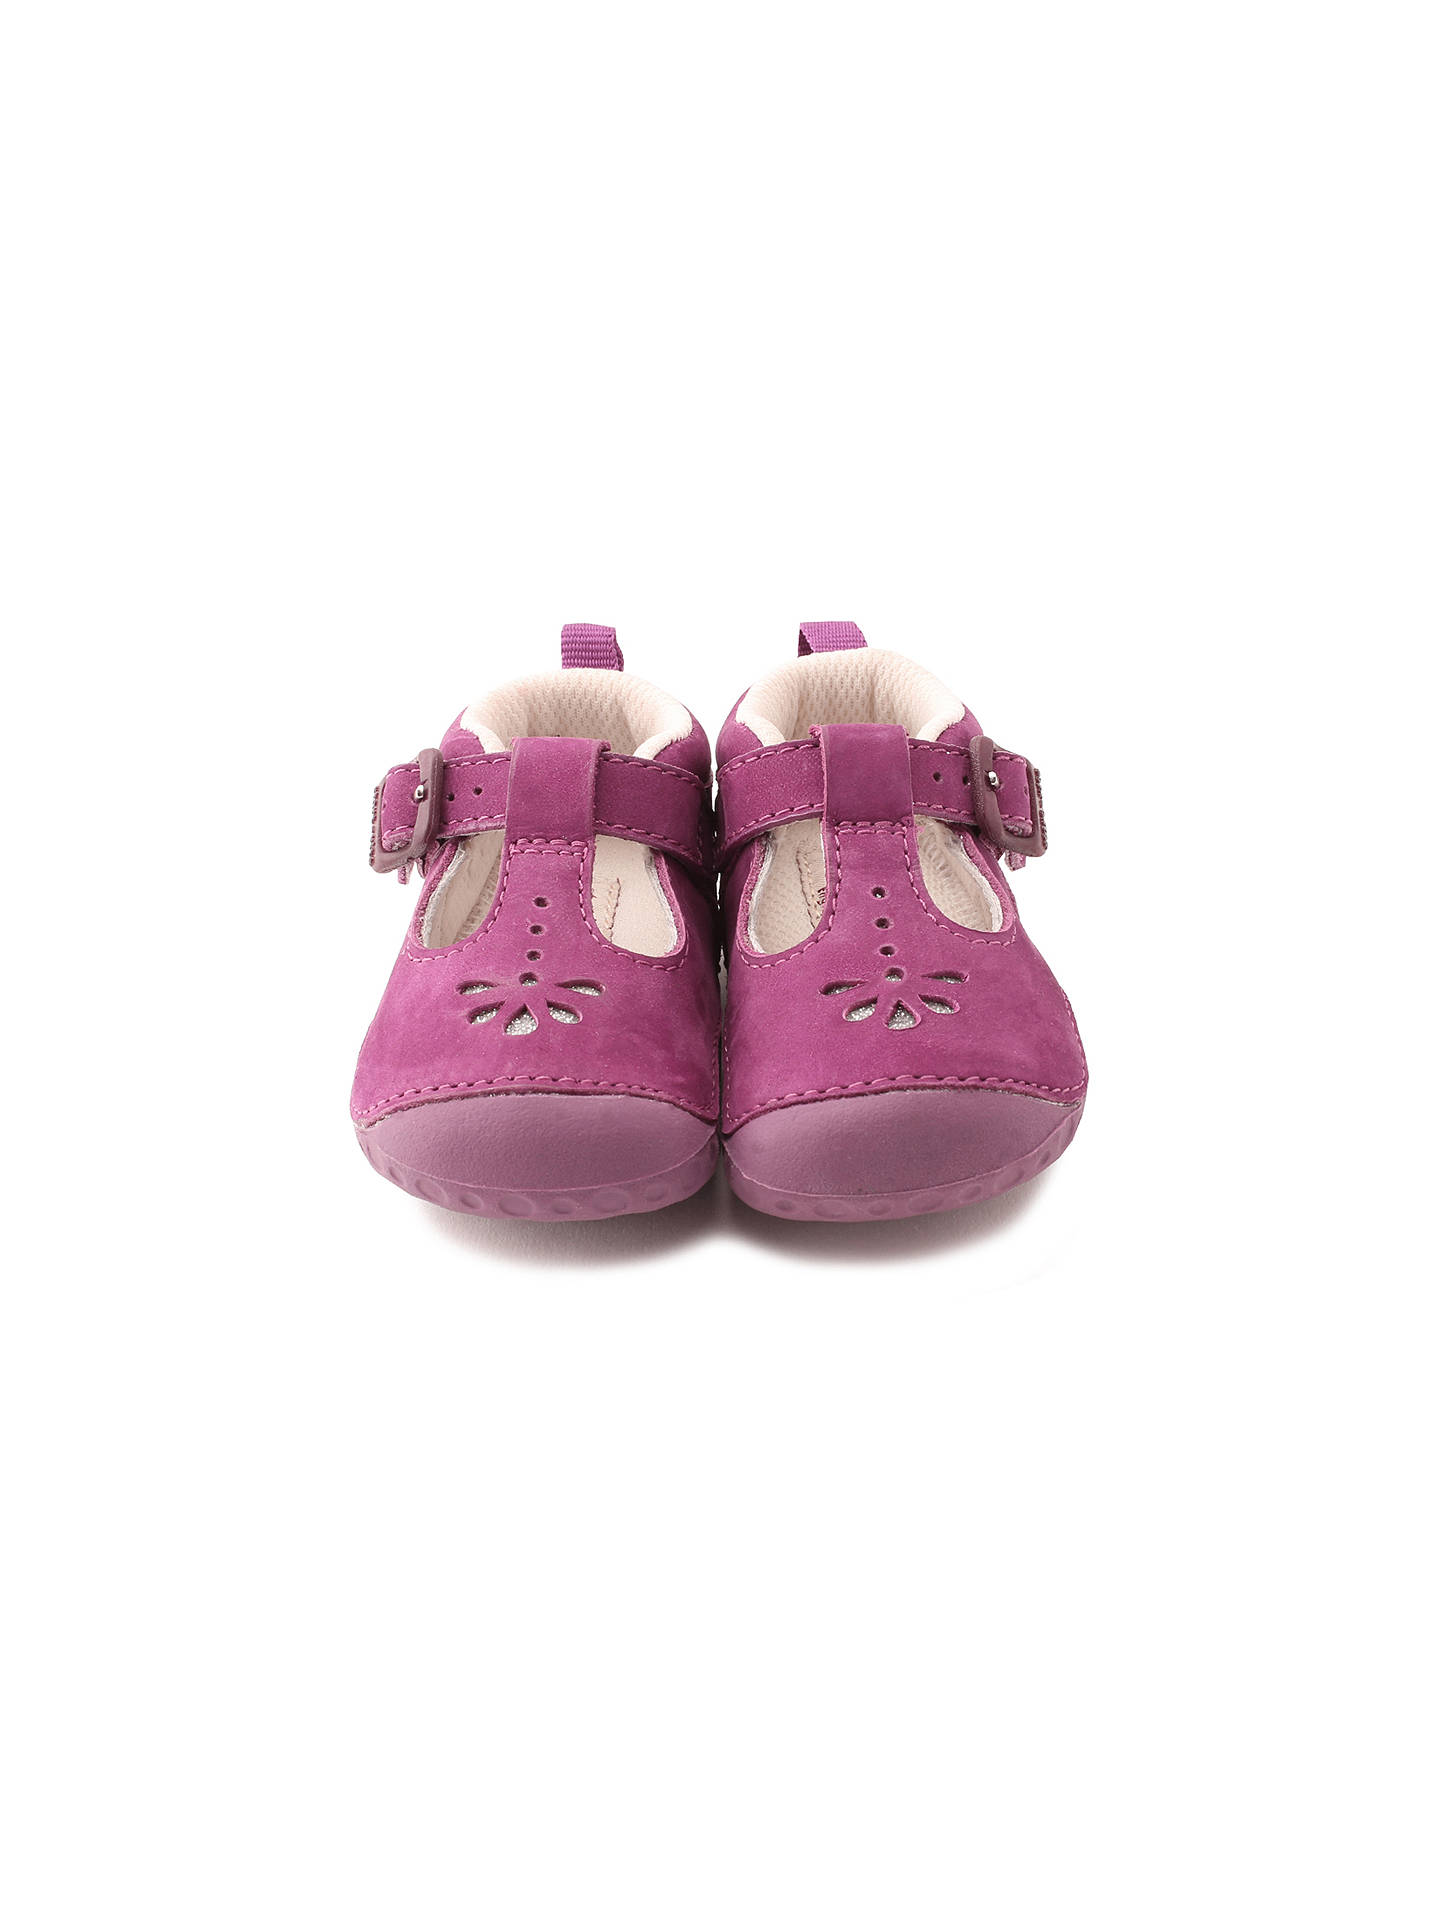 BuyStart-rite Baby Bubble T-bar Leather Shoes, Berry, 2E Jnr Online at johnlewis.com